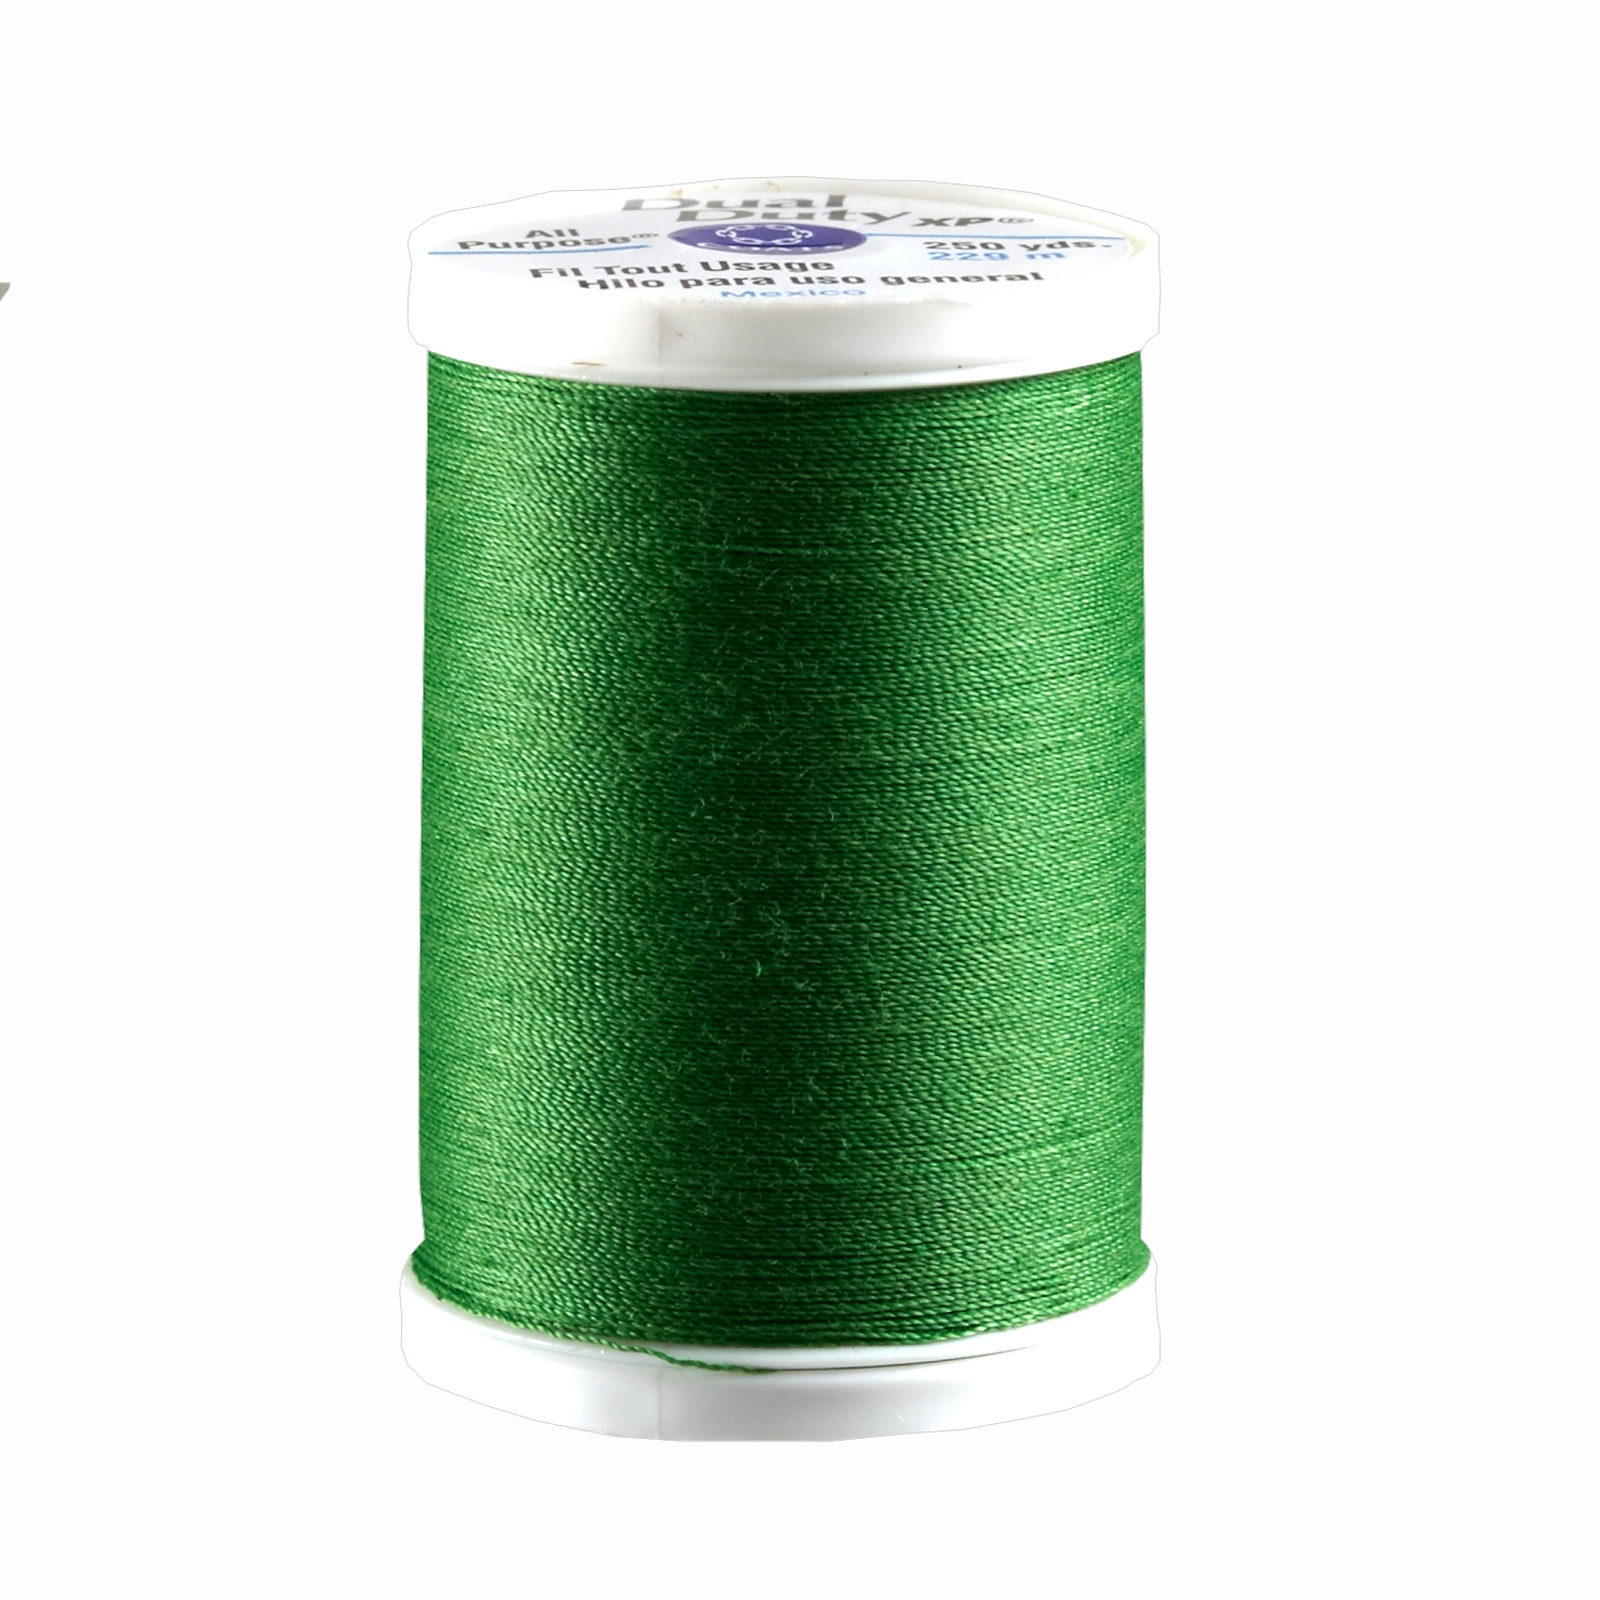 Coats & Clark Dual Duty XP 250yd Emerald